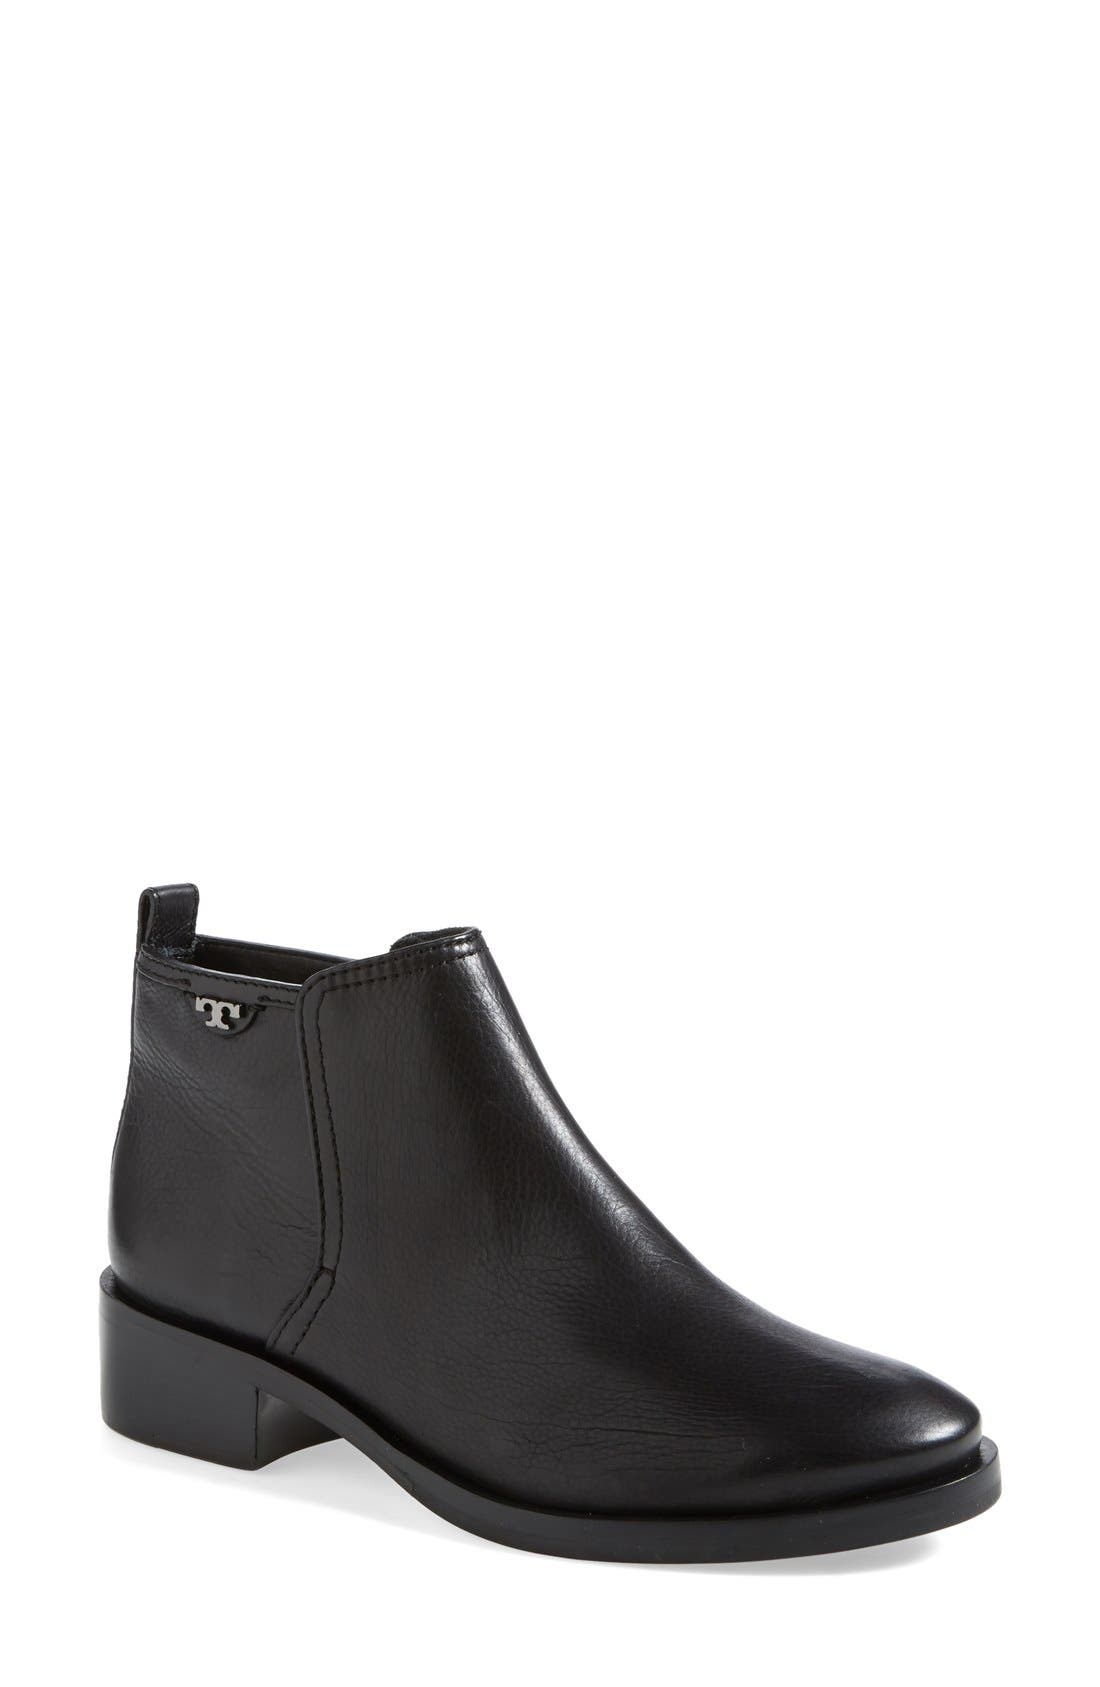 Alternate Image 1 Selected - Tory Burch 'Lexi' Bootie (Women)